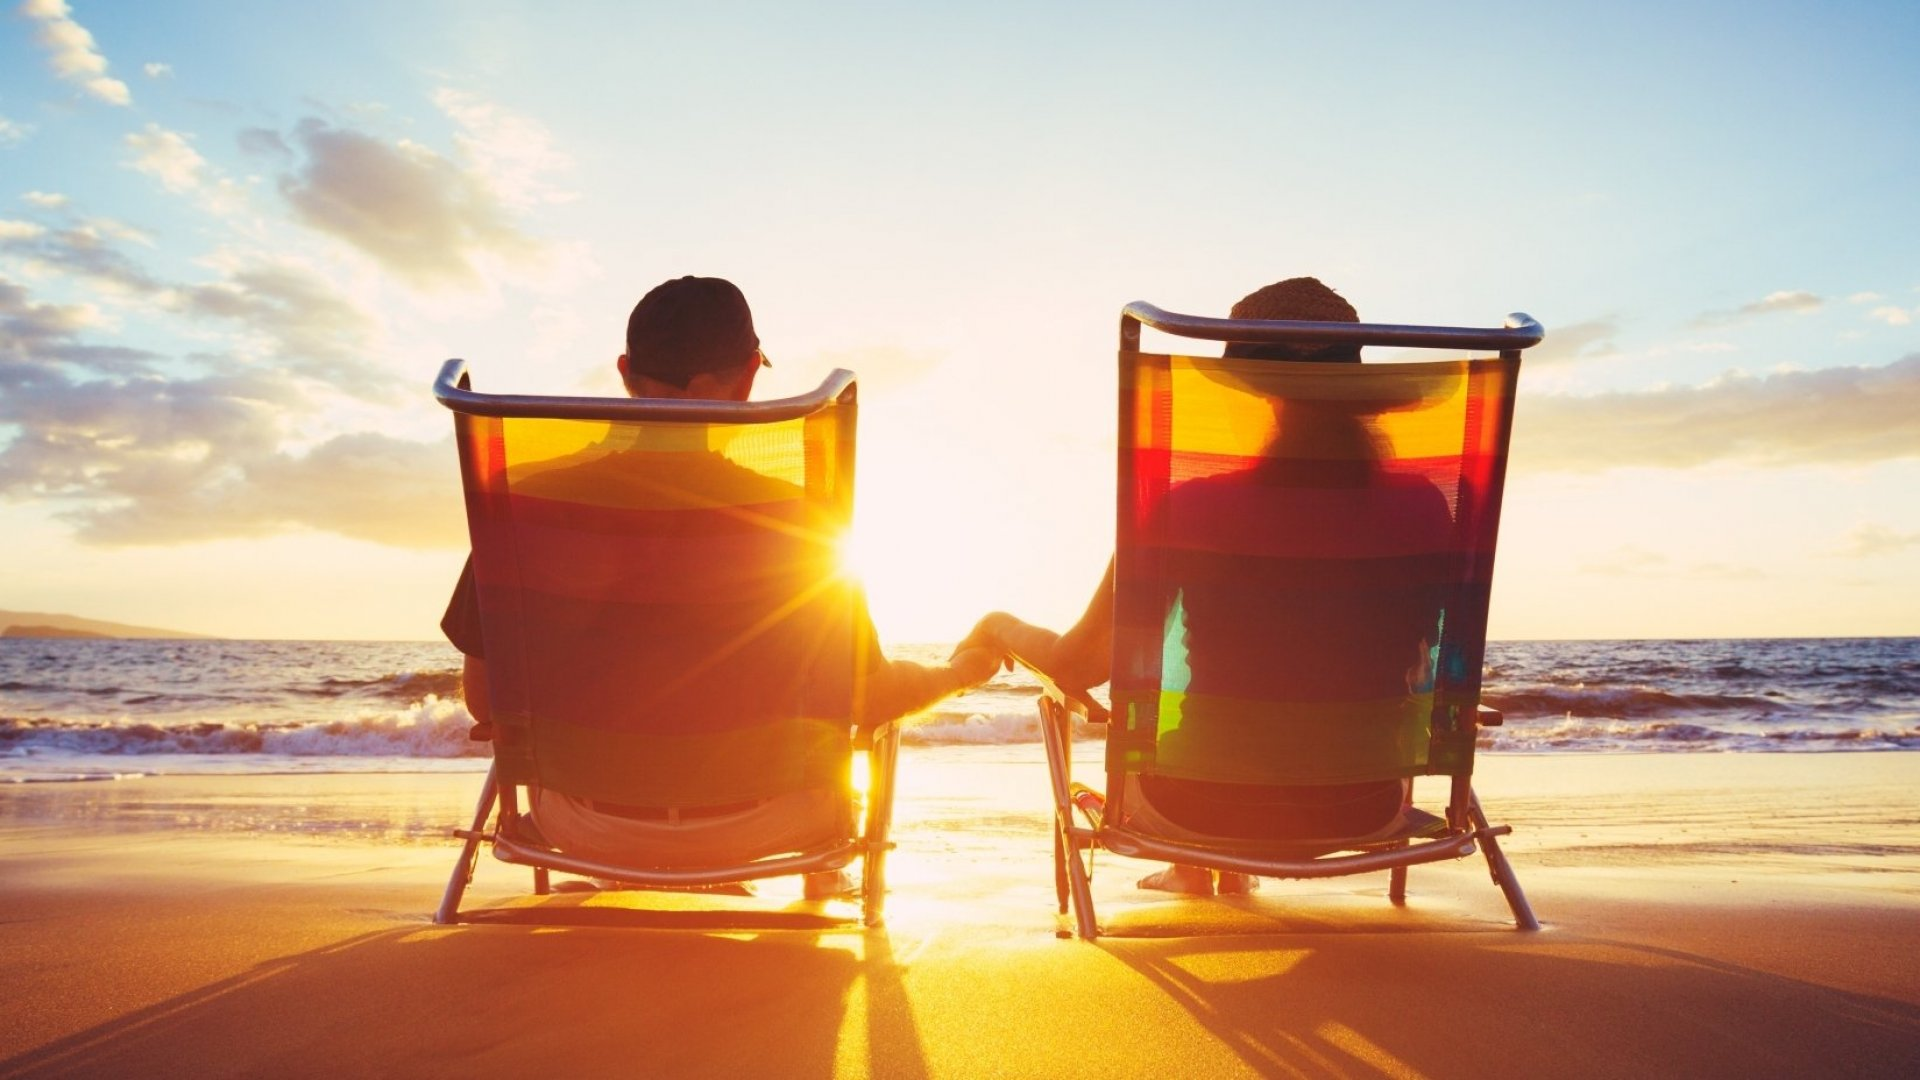 5 Reasons Retiring Early is a Terrible Idea, According to Science